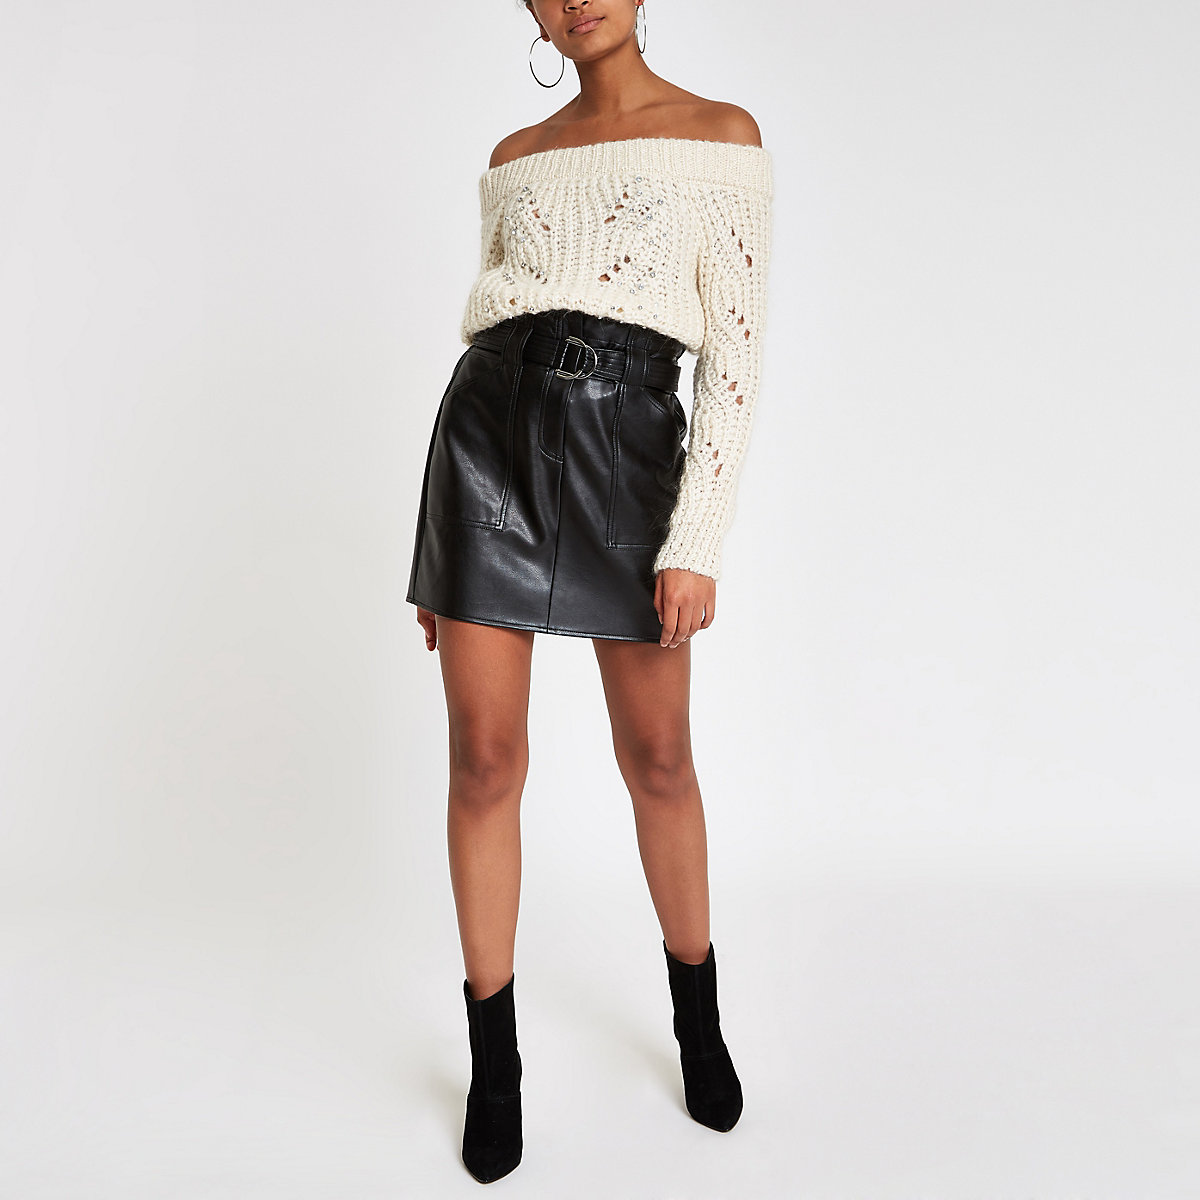 Cream knit stitch embellished bardot sweater